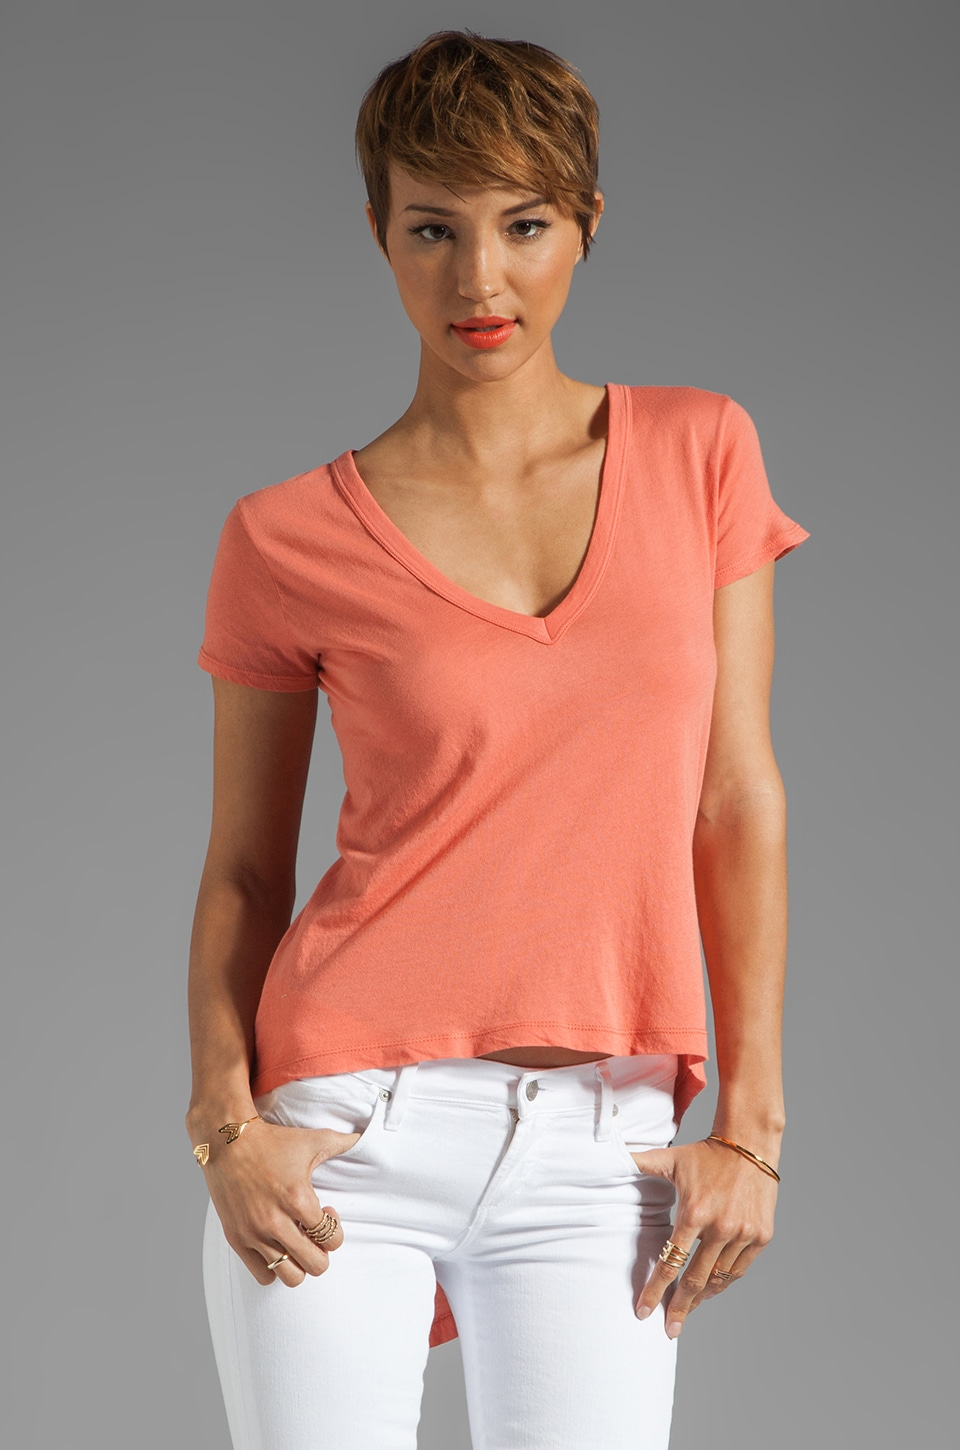 Enza Costa Tissue Jersey Hi Lo Short Sleeve in Coral